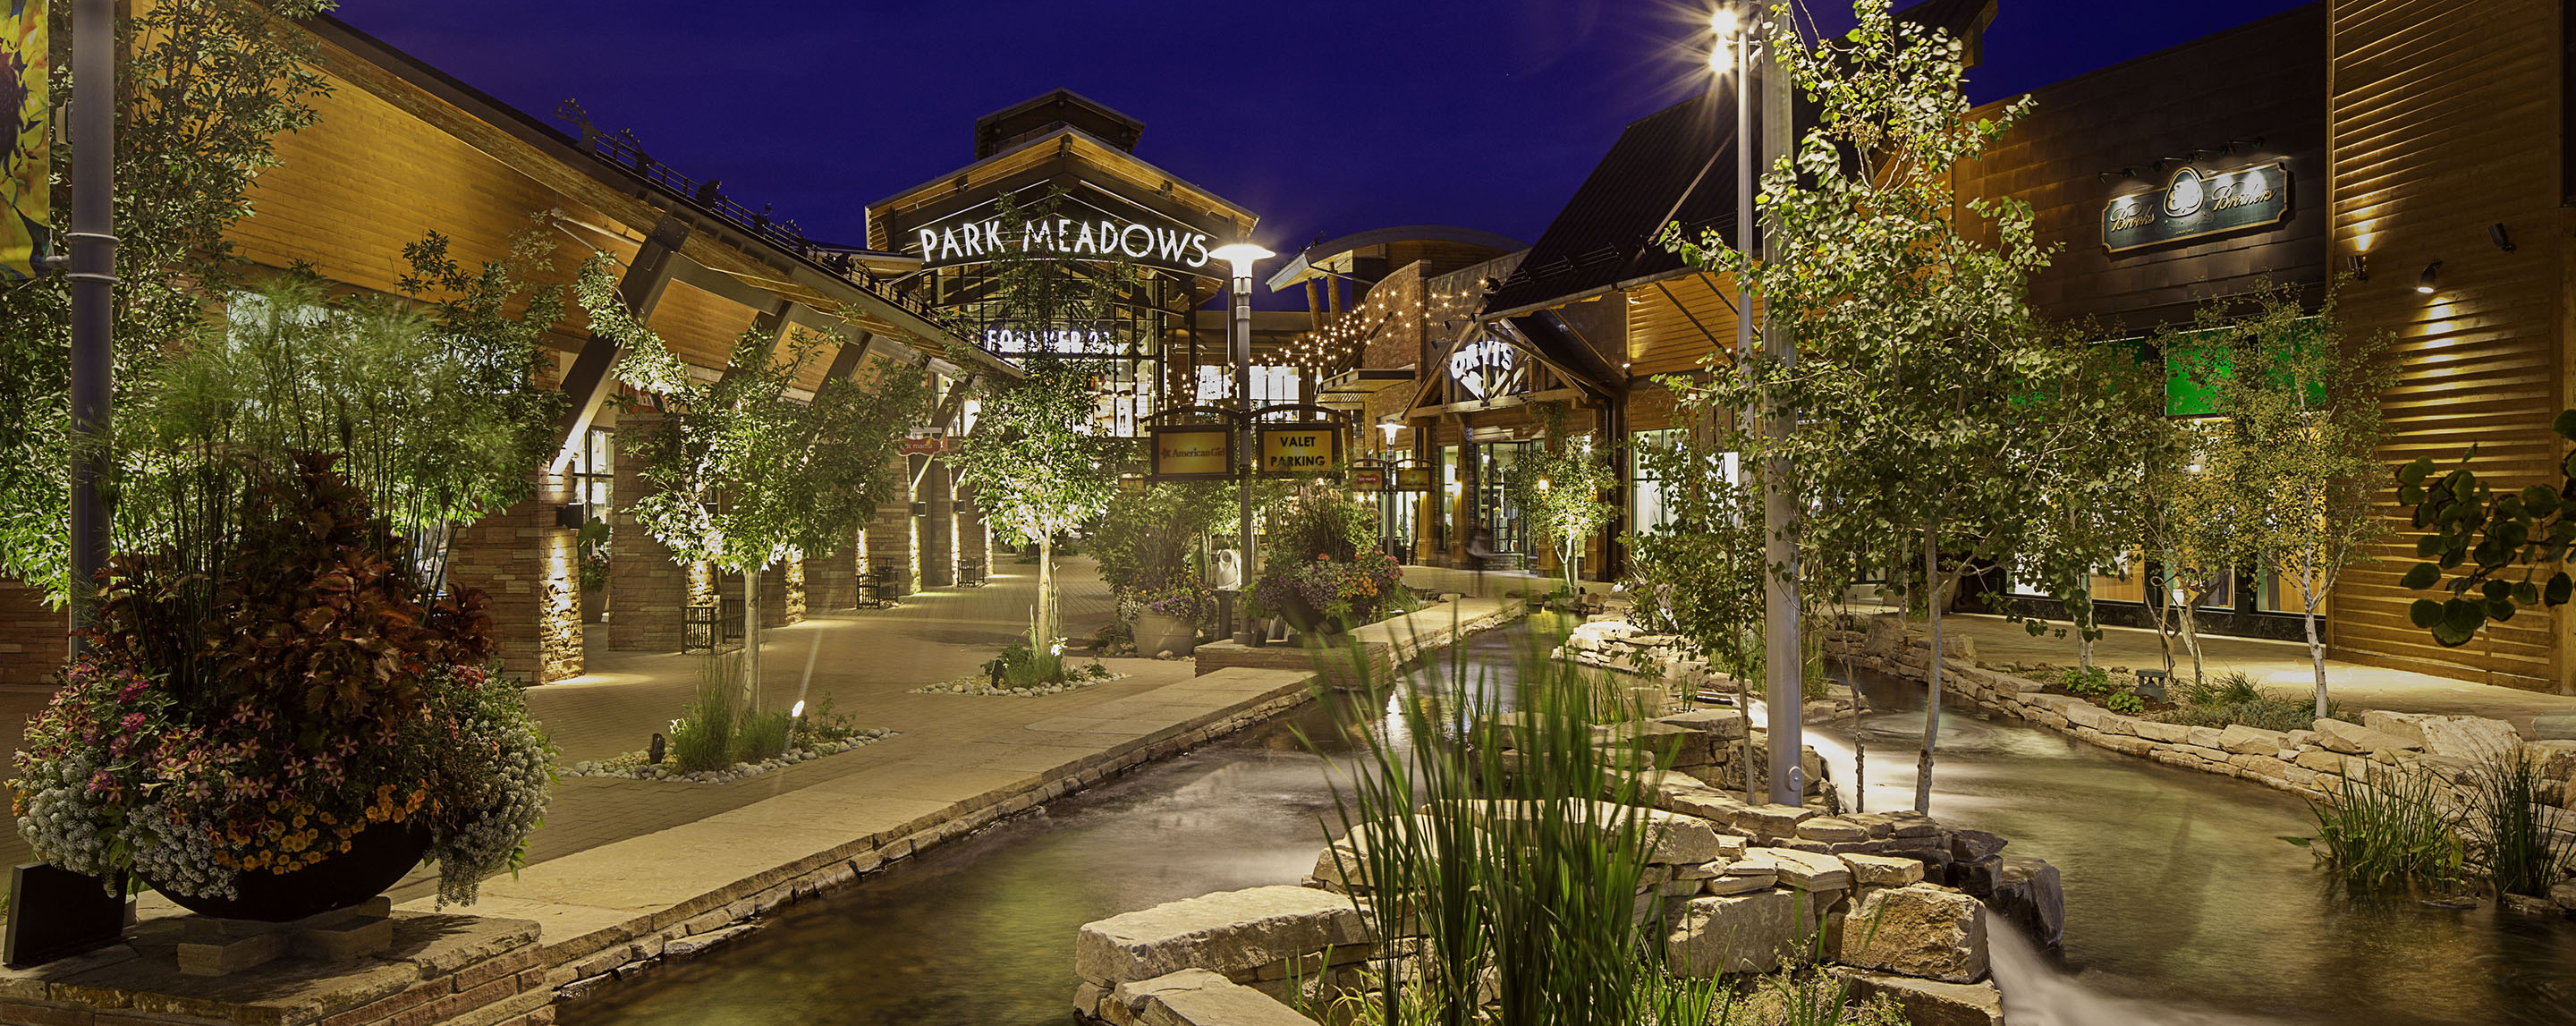 The walkway leading into Park Meadows is lit up at night with a decorative pond, trees, and lights welcoming visitors.